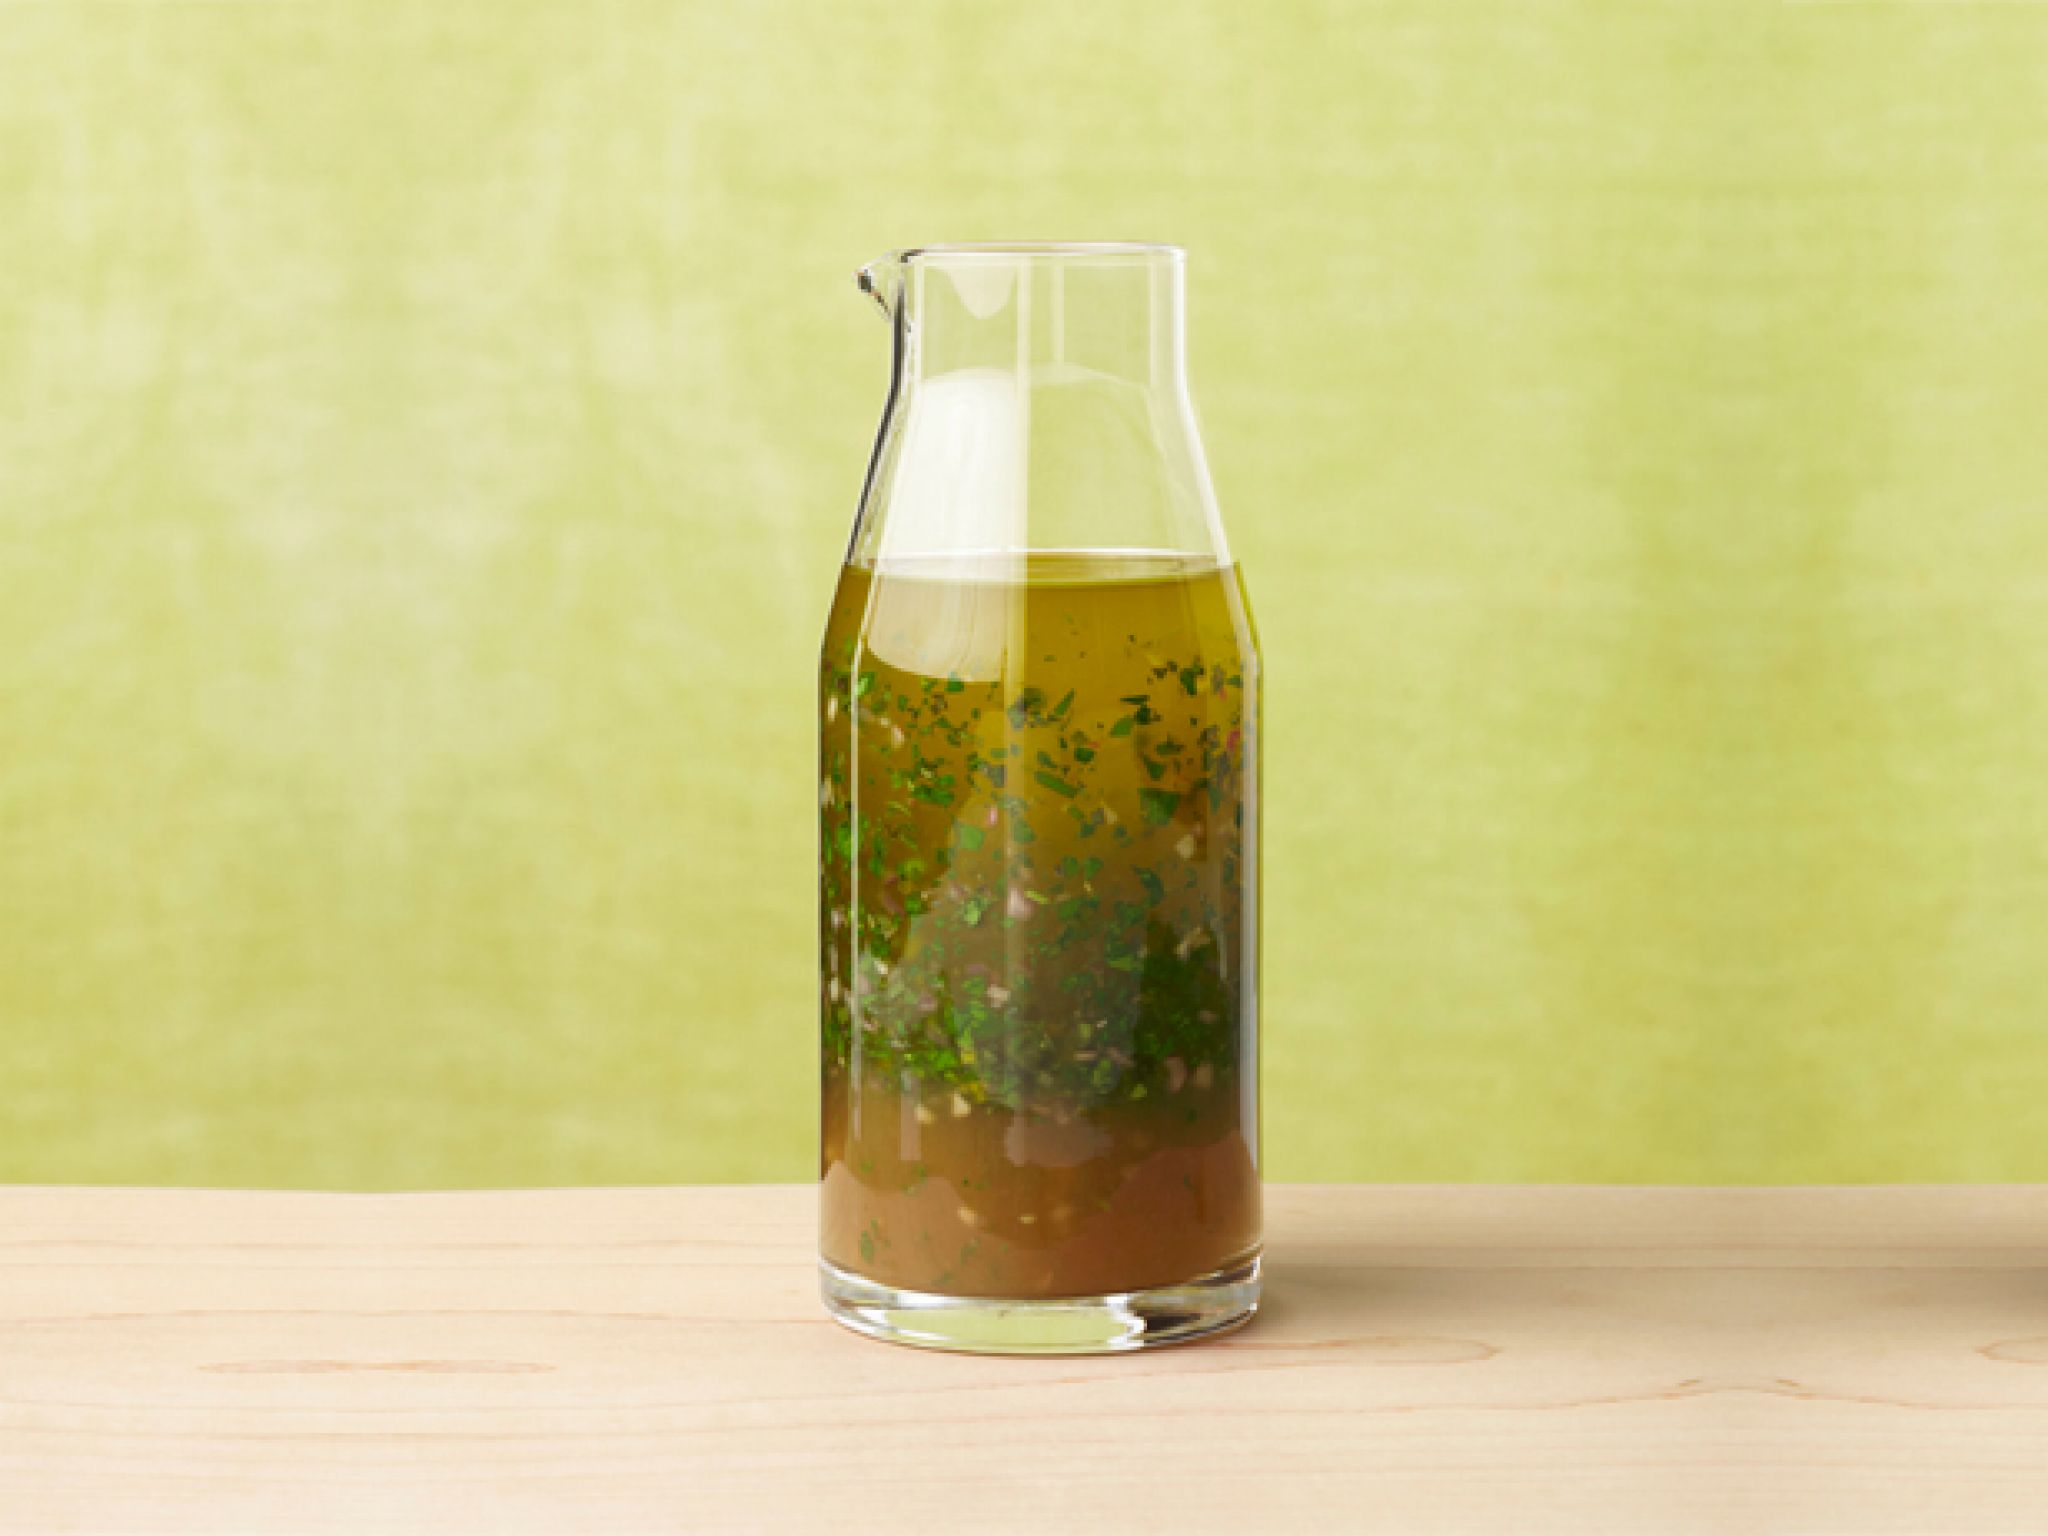 http://www.foodnetwork.com/recipes/articles/50-salad-dressing-recipes.html